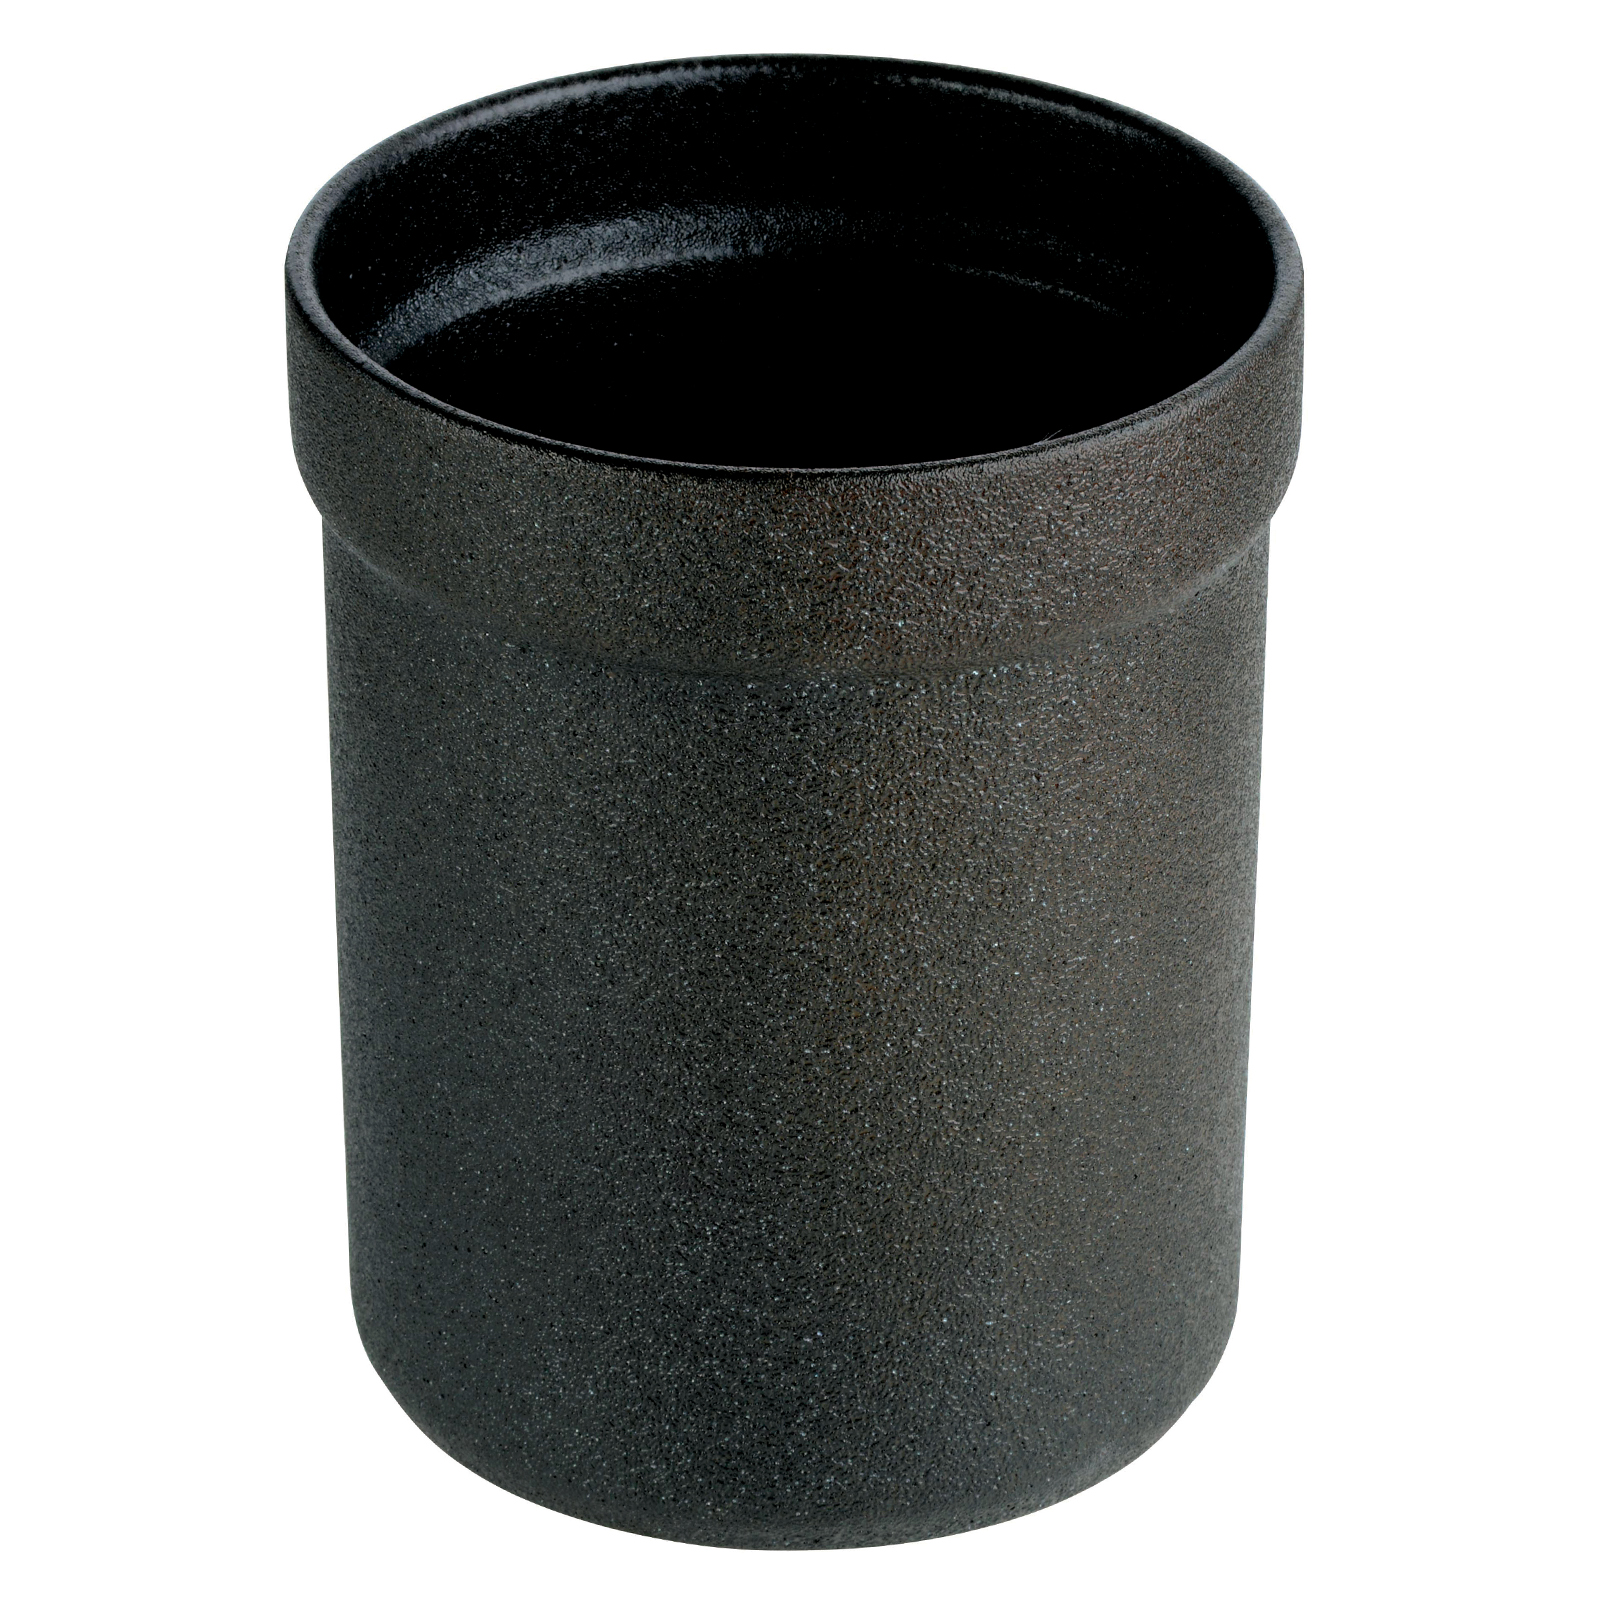 Gastro-Noir-Mie Utensil Holder